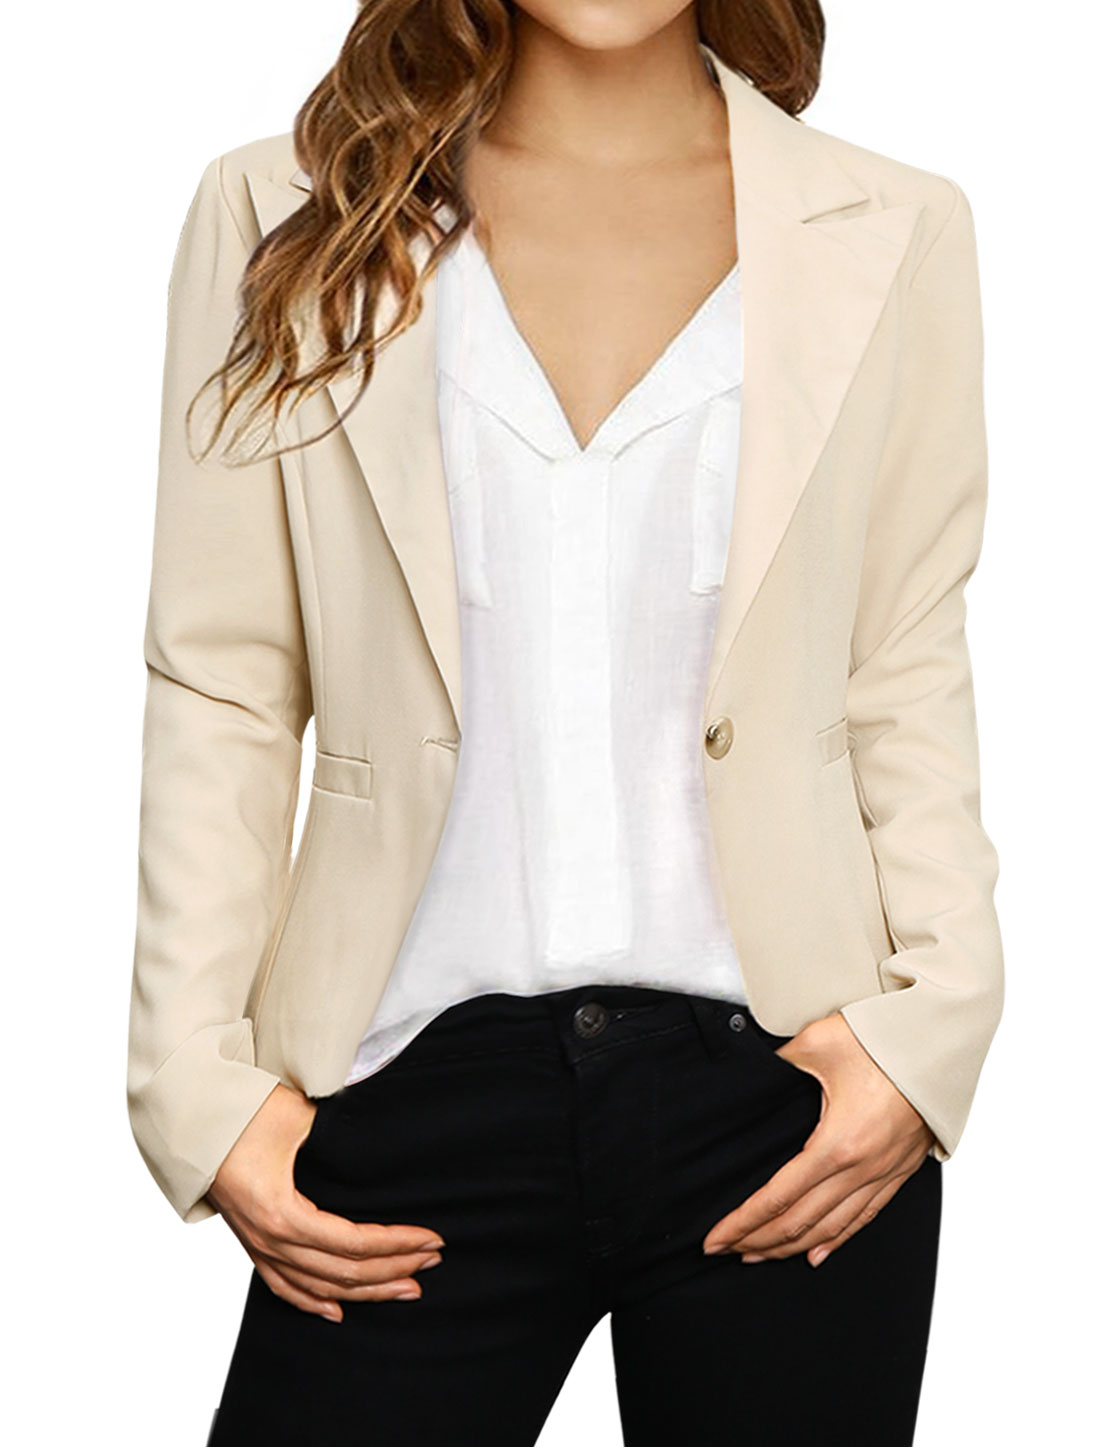 Ladies Peaked Lapel One-Button Placket Elbow-Patch Blazer Beige XL